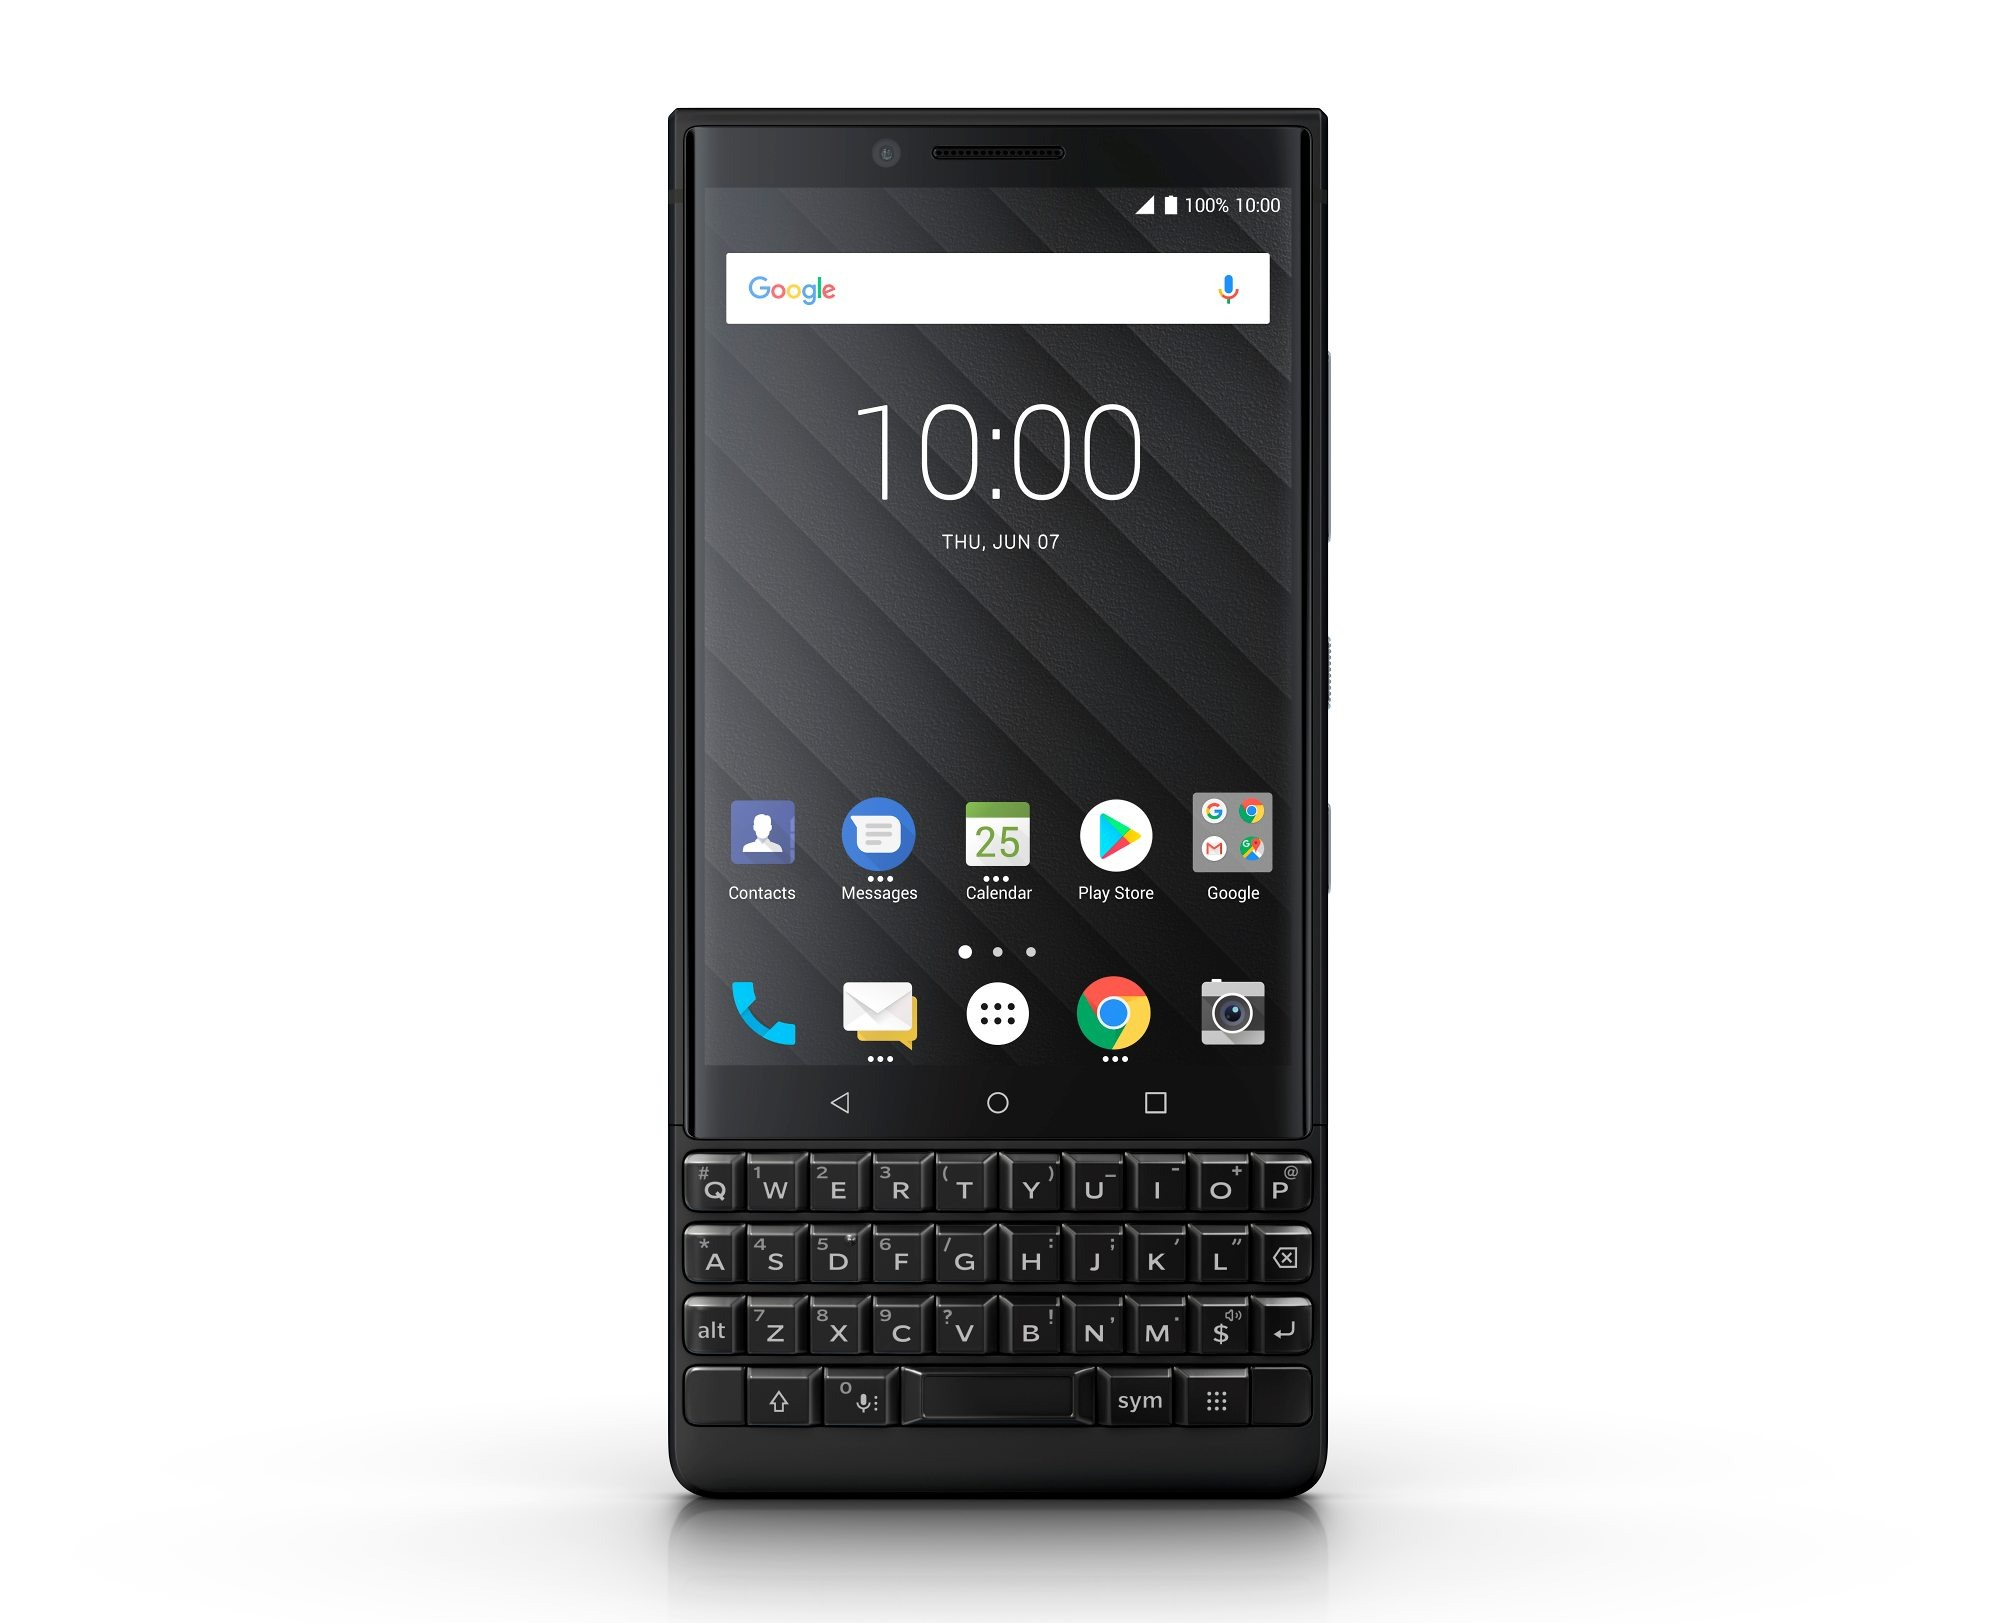 Blackberry Key2 launched - Snapdragon 660, Dual cameras & QWERTY keyboard